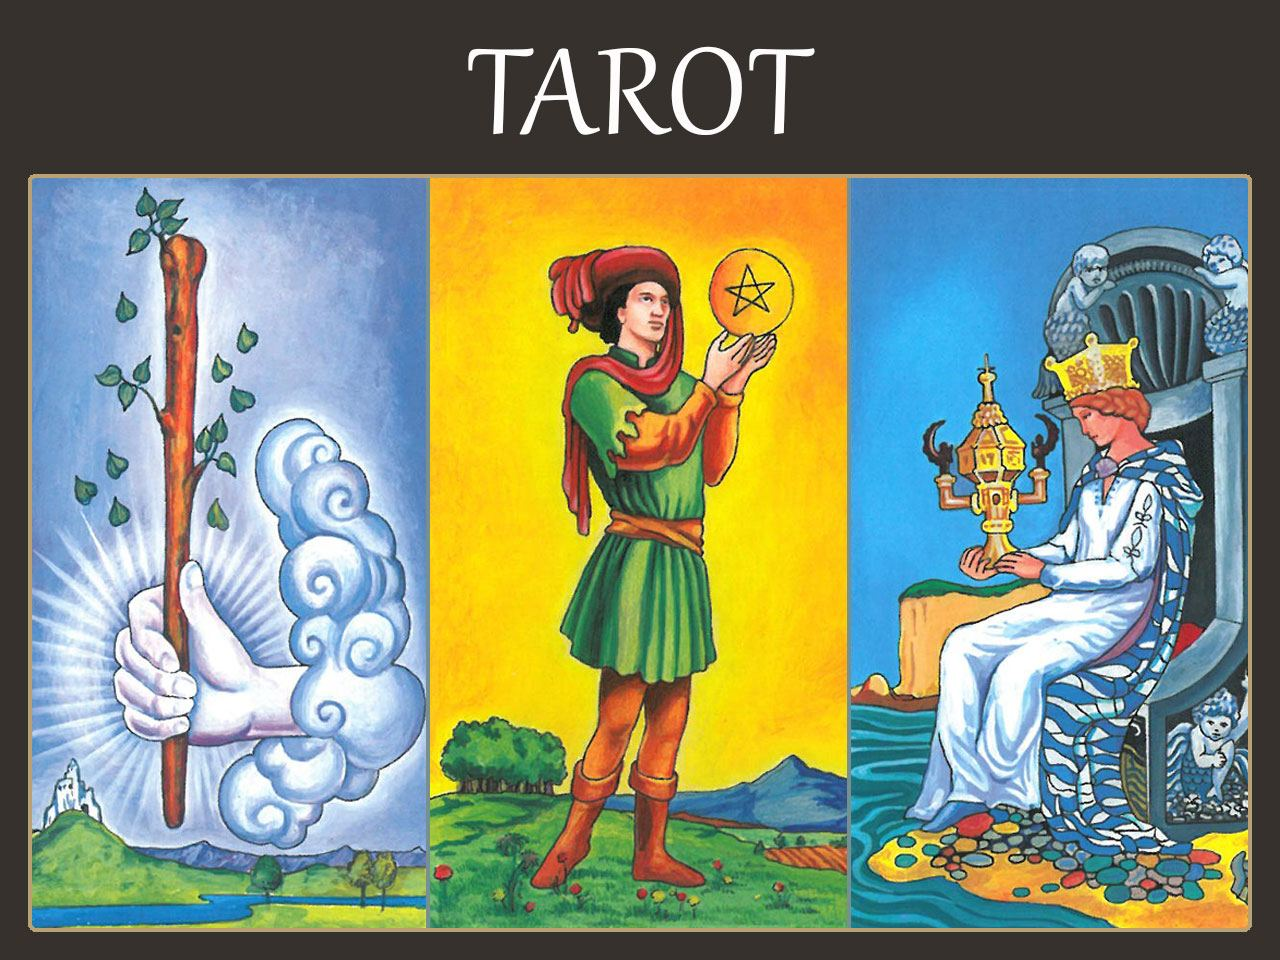 tarot card Everything about tarots and tarot cards in the tarot's major arcana.